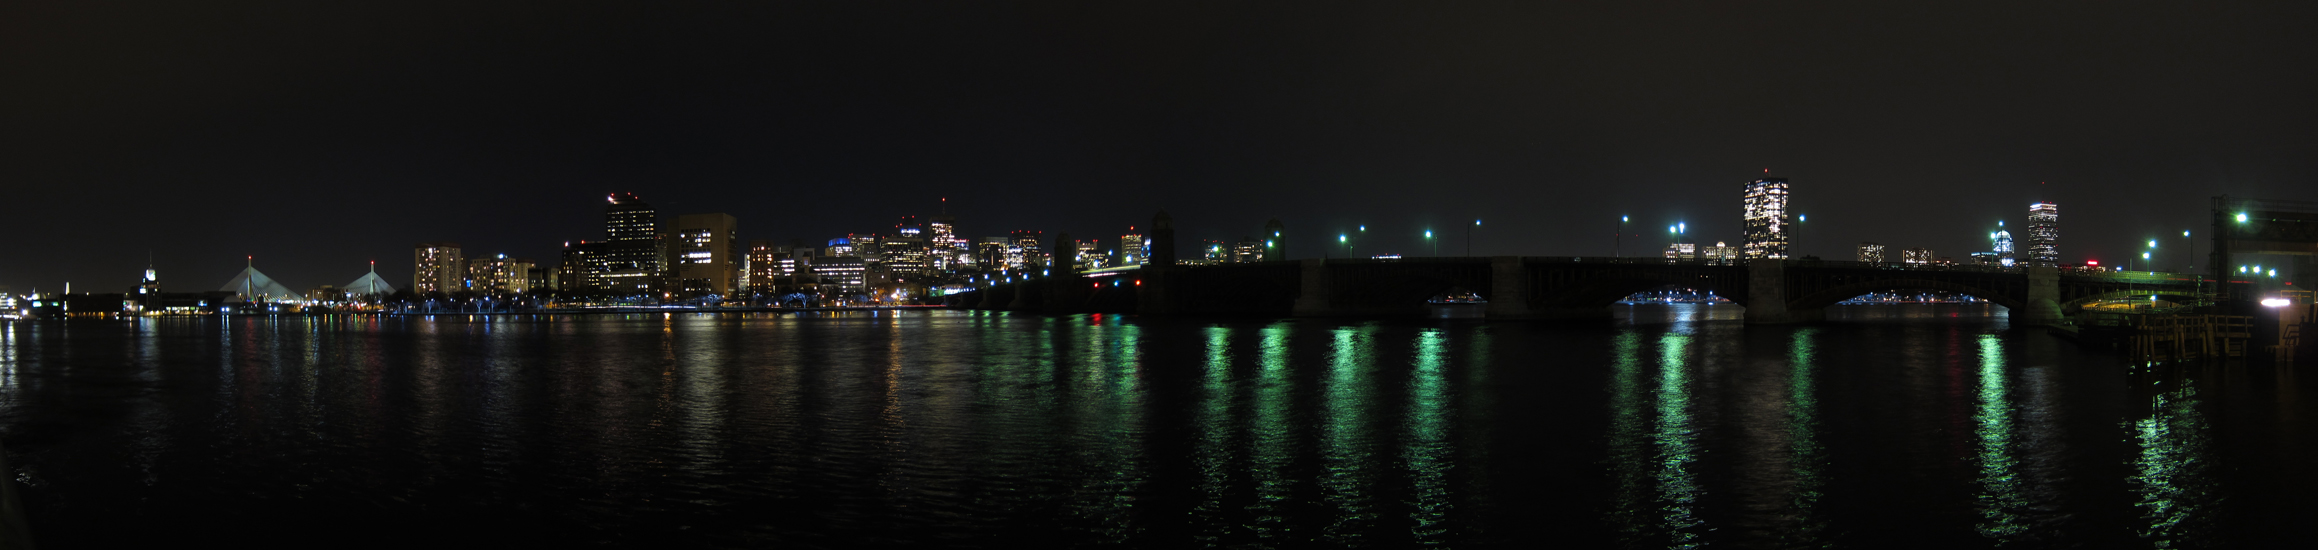 Boston Skyline Panorama.jpg